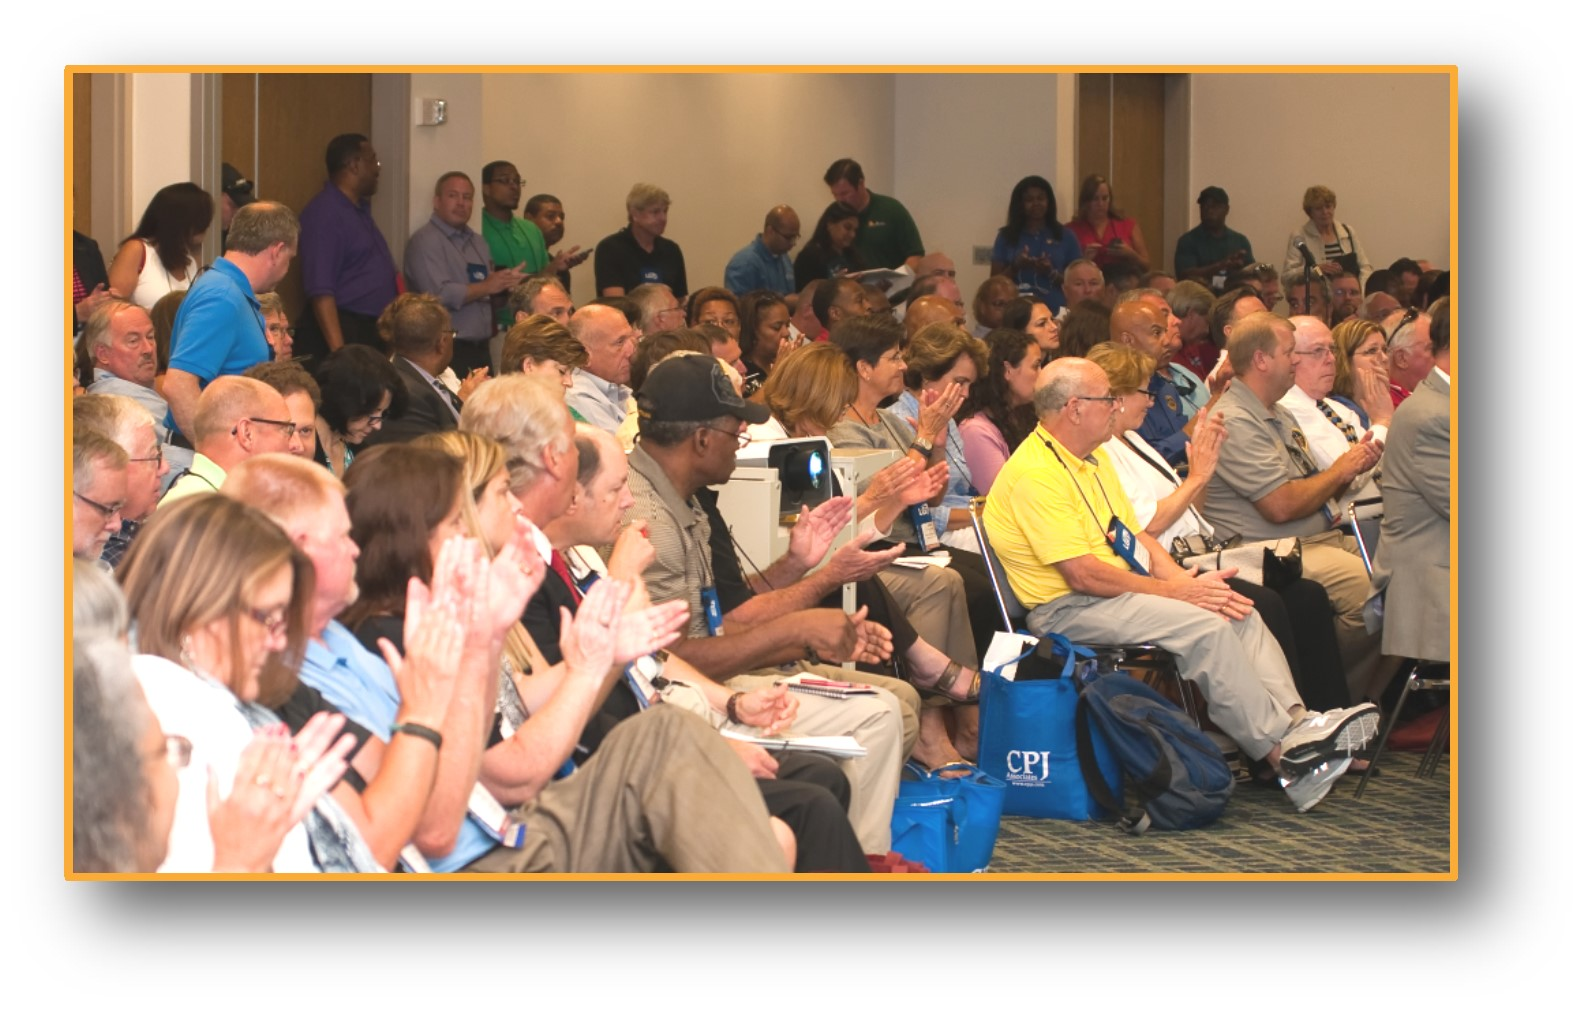 Session SC15 - People seated and clapping